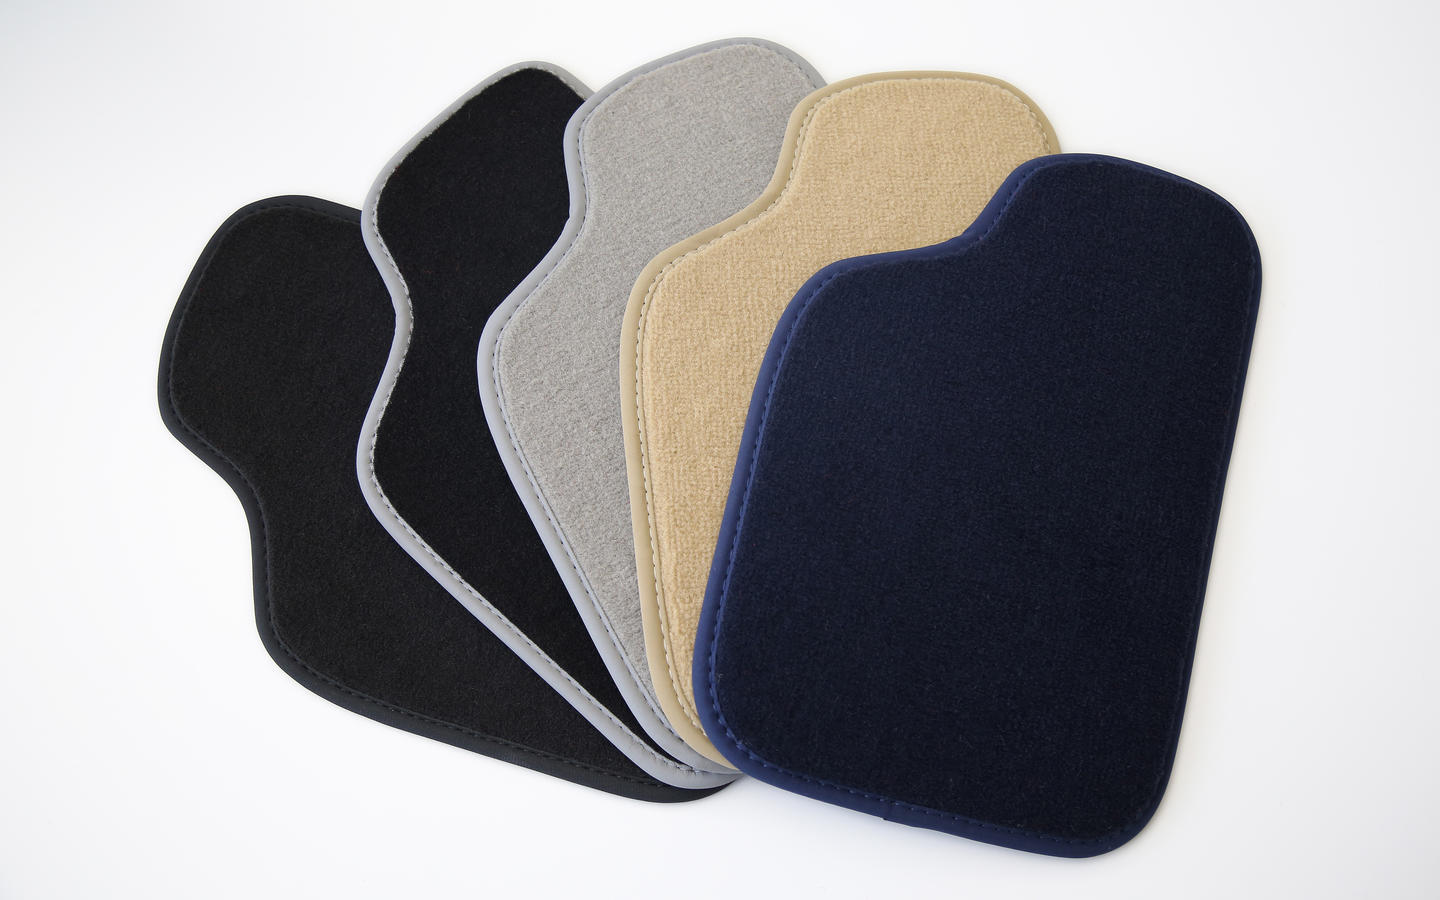 heico-sportiv-floor-mats-colour-samples-